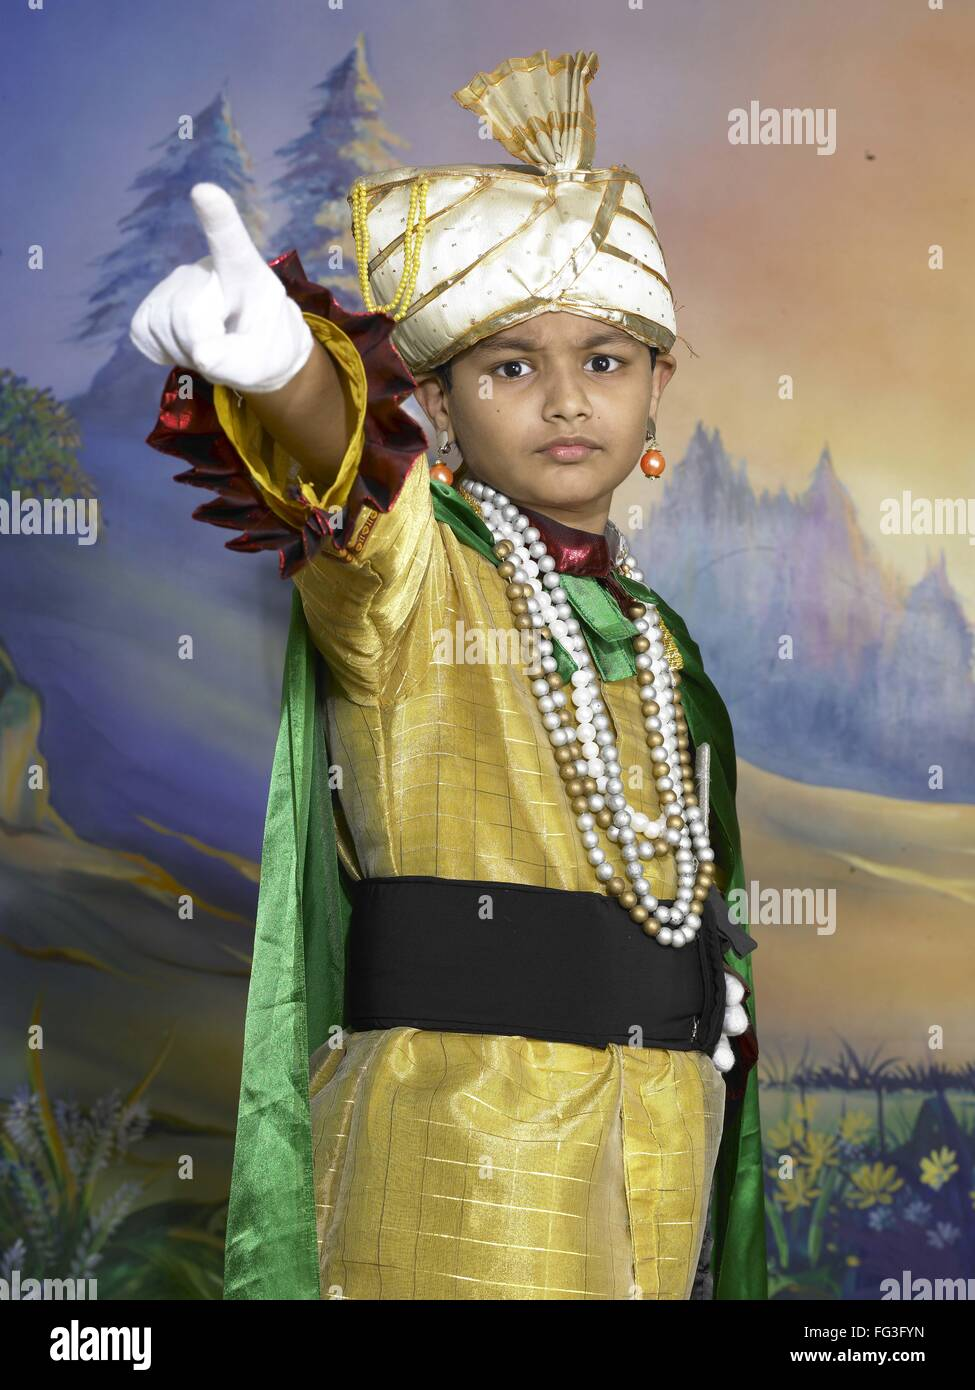 55fc75ddfe South Asian Indian boy dressed as prince performing fancy dress competition  on stage in nursery school MR